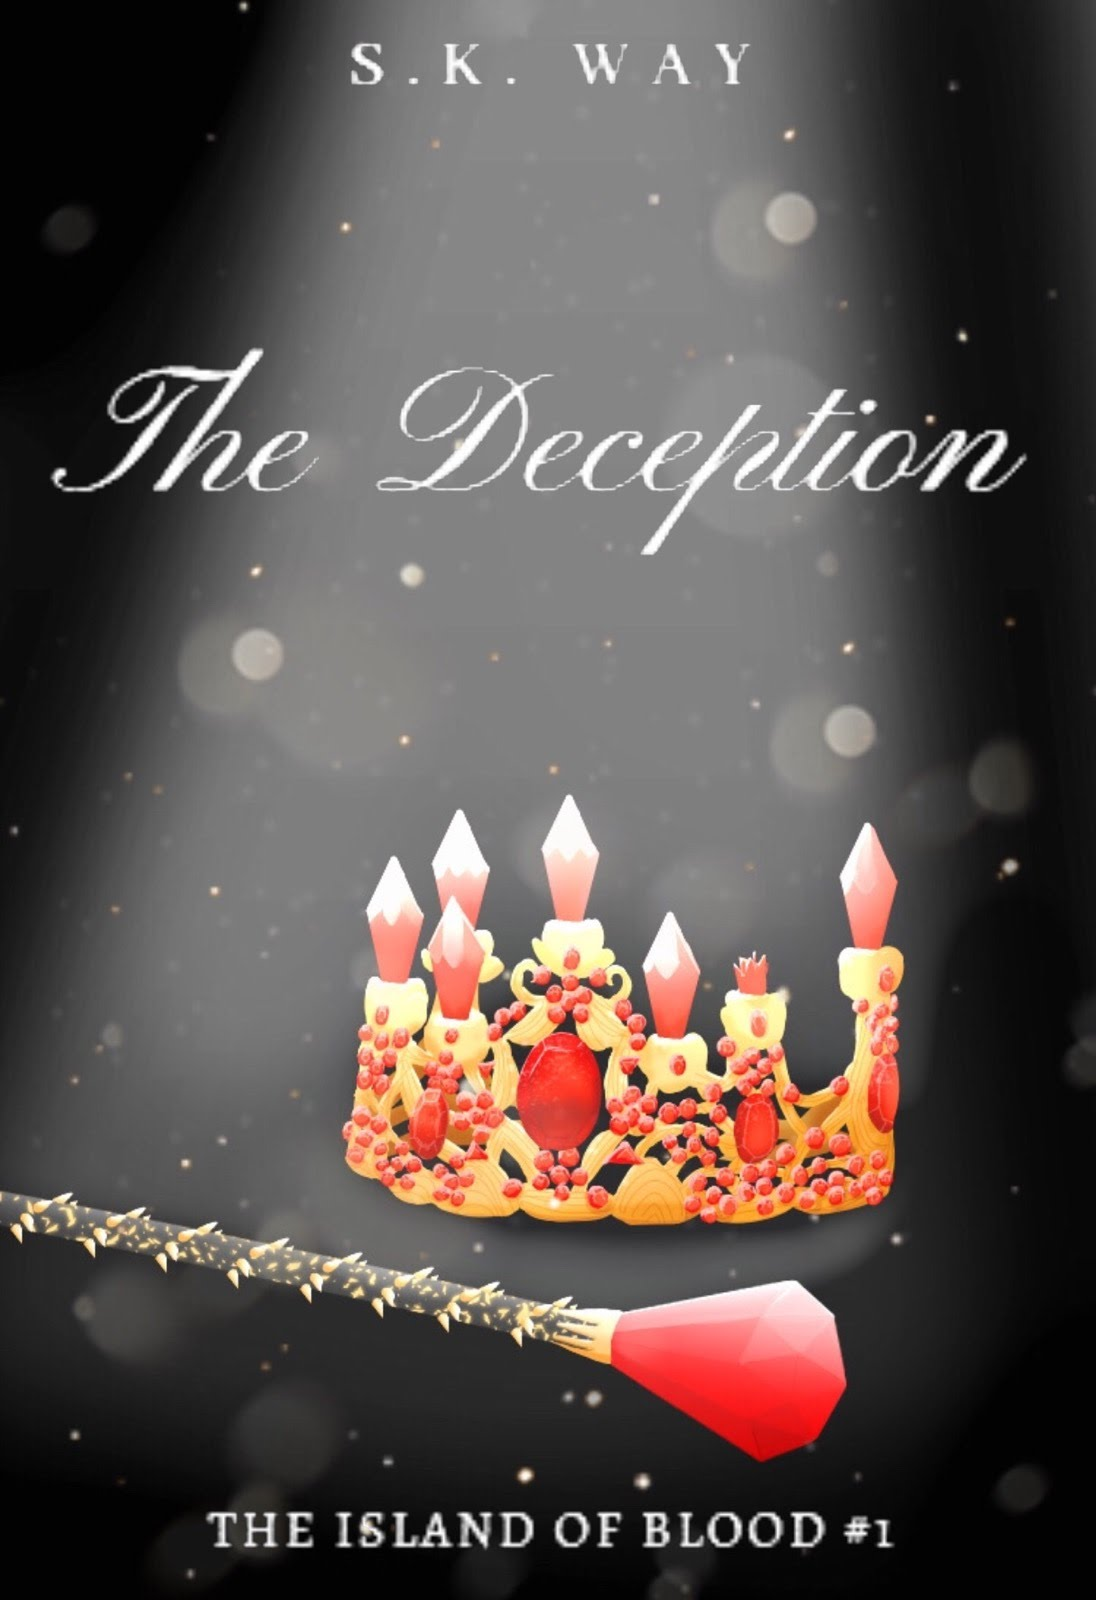 The Deception by S.K. Way